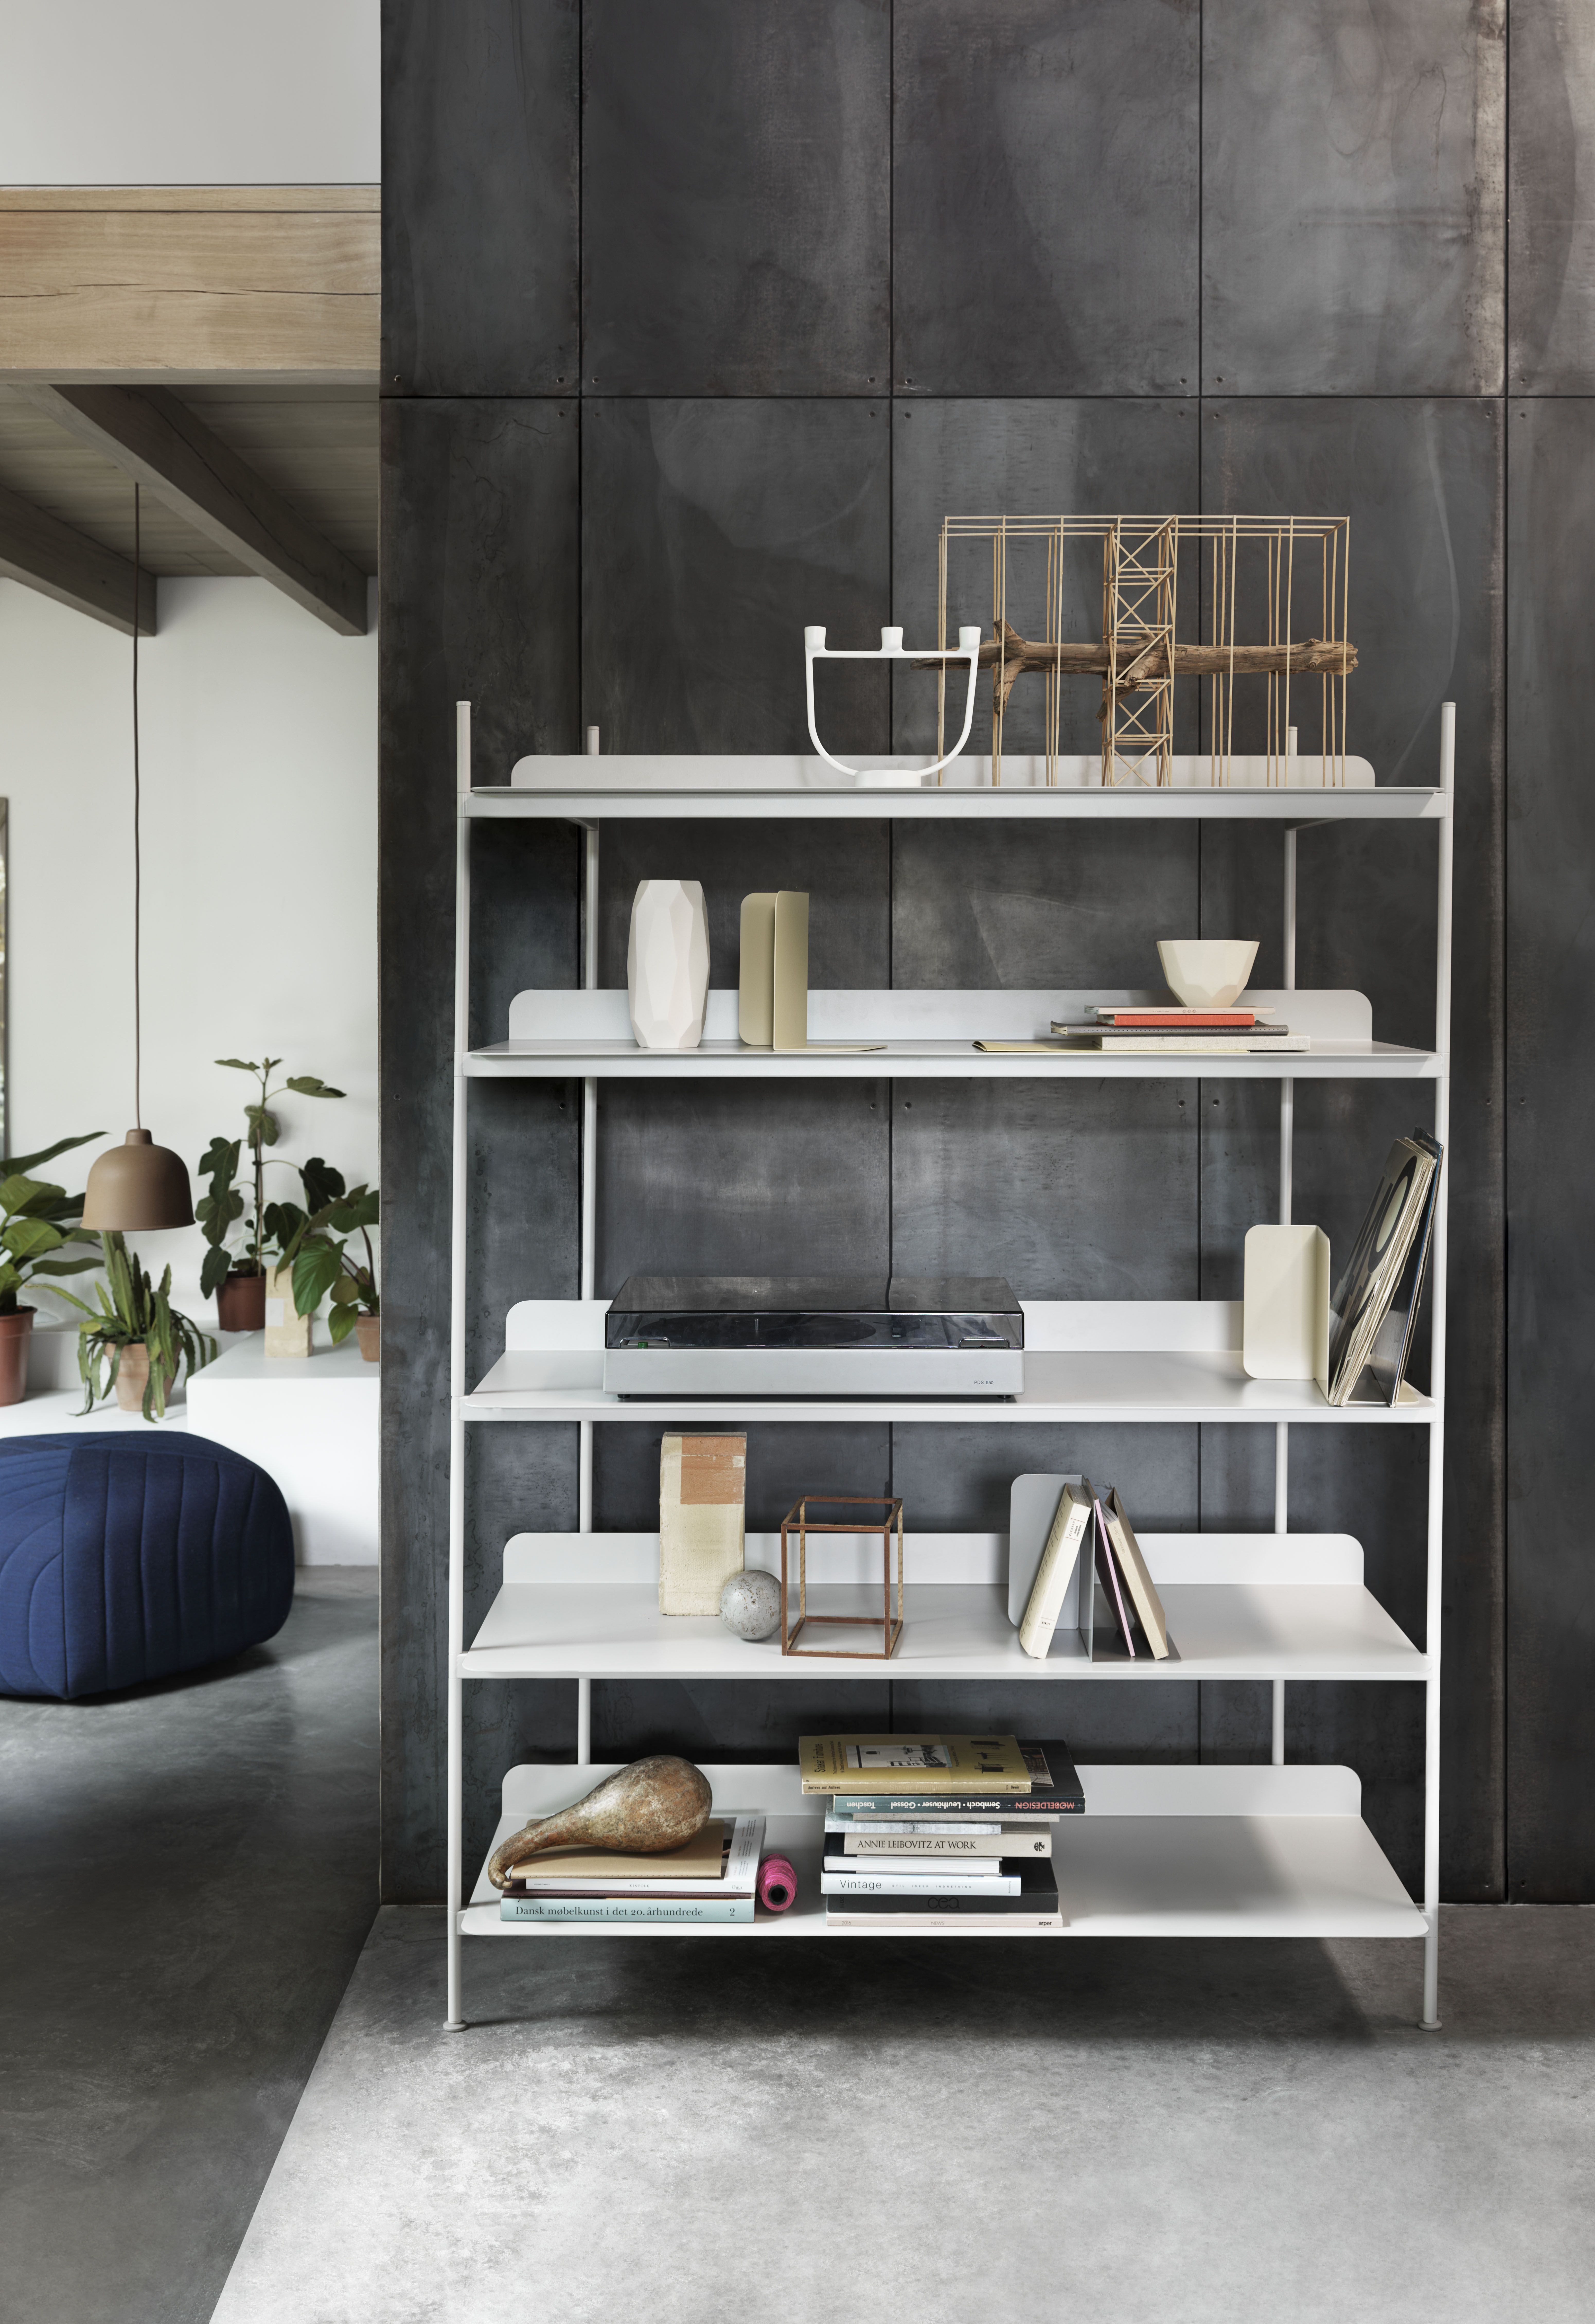 Compile Shelving System Designed By Cecilie Manz For Muuto